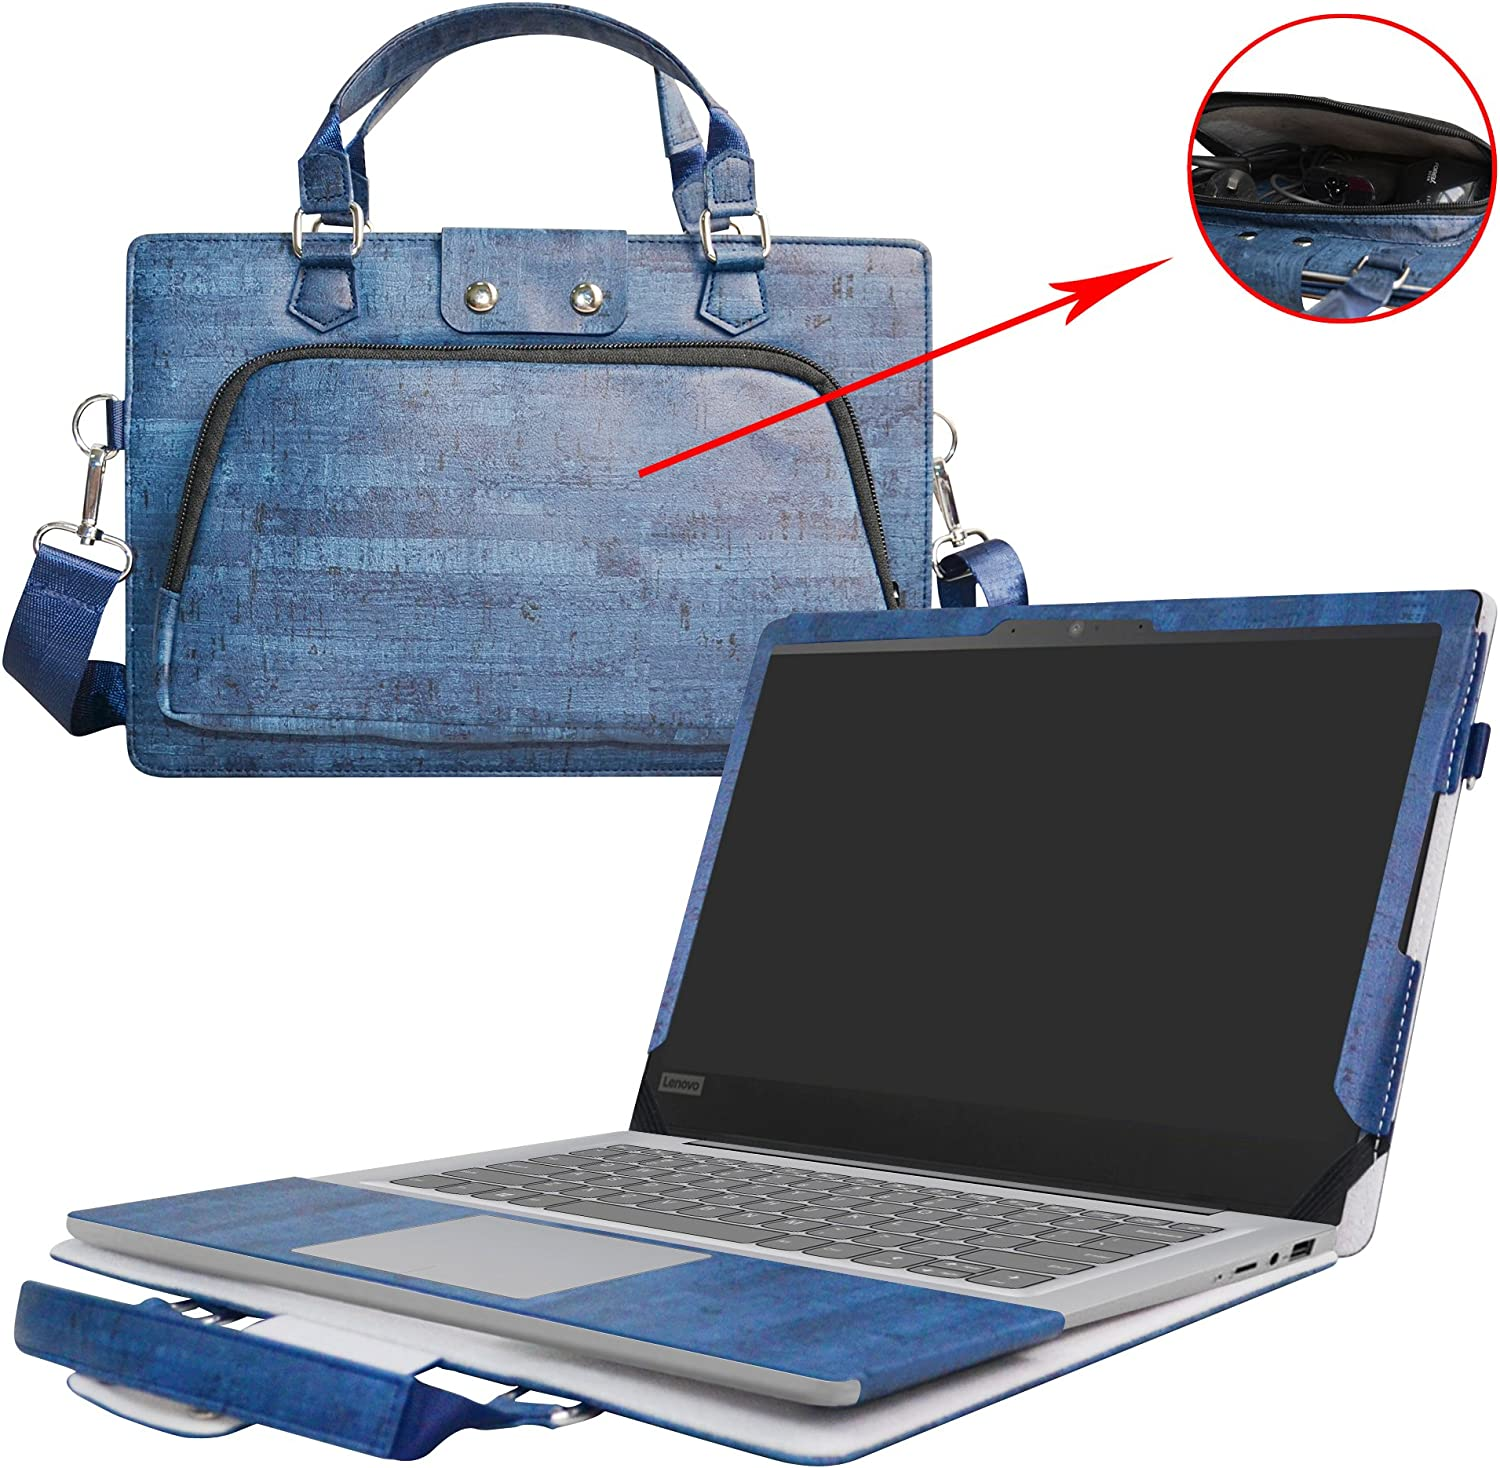 "Lenovo IDEAPAD 110 15 Case,2 in 1 Accurately Designed Protective PU Leather Cover + Portable Carrying Bag for 15.6"" Lenovo IDEAPAD 110 15 Series 110-15IBR 110-15ACL 110-15ISK Laptop,Blue"